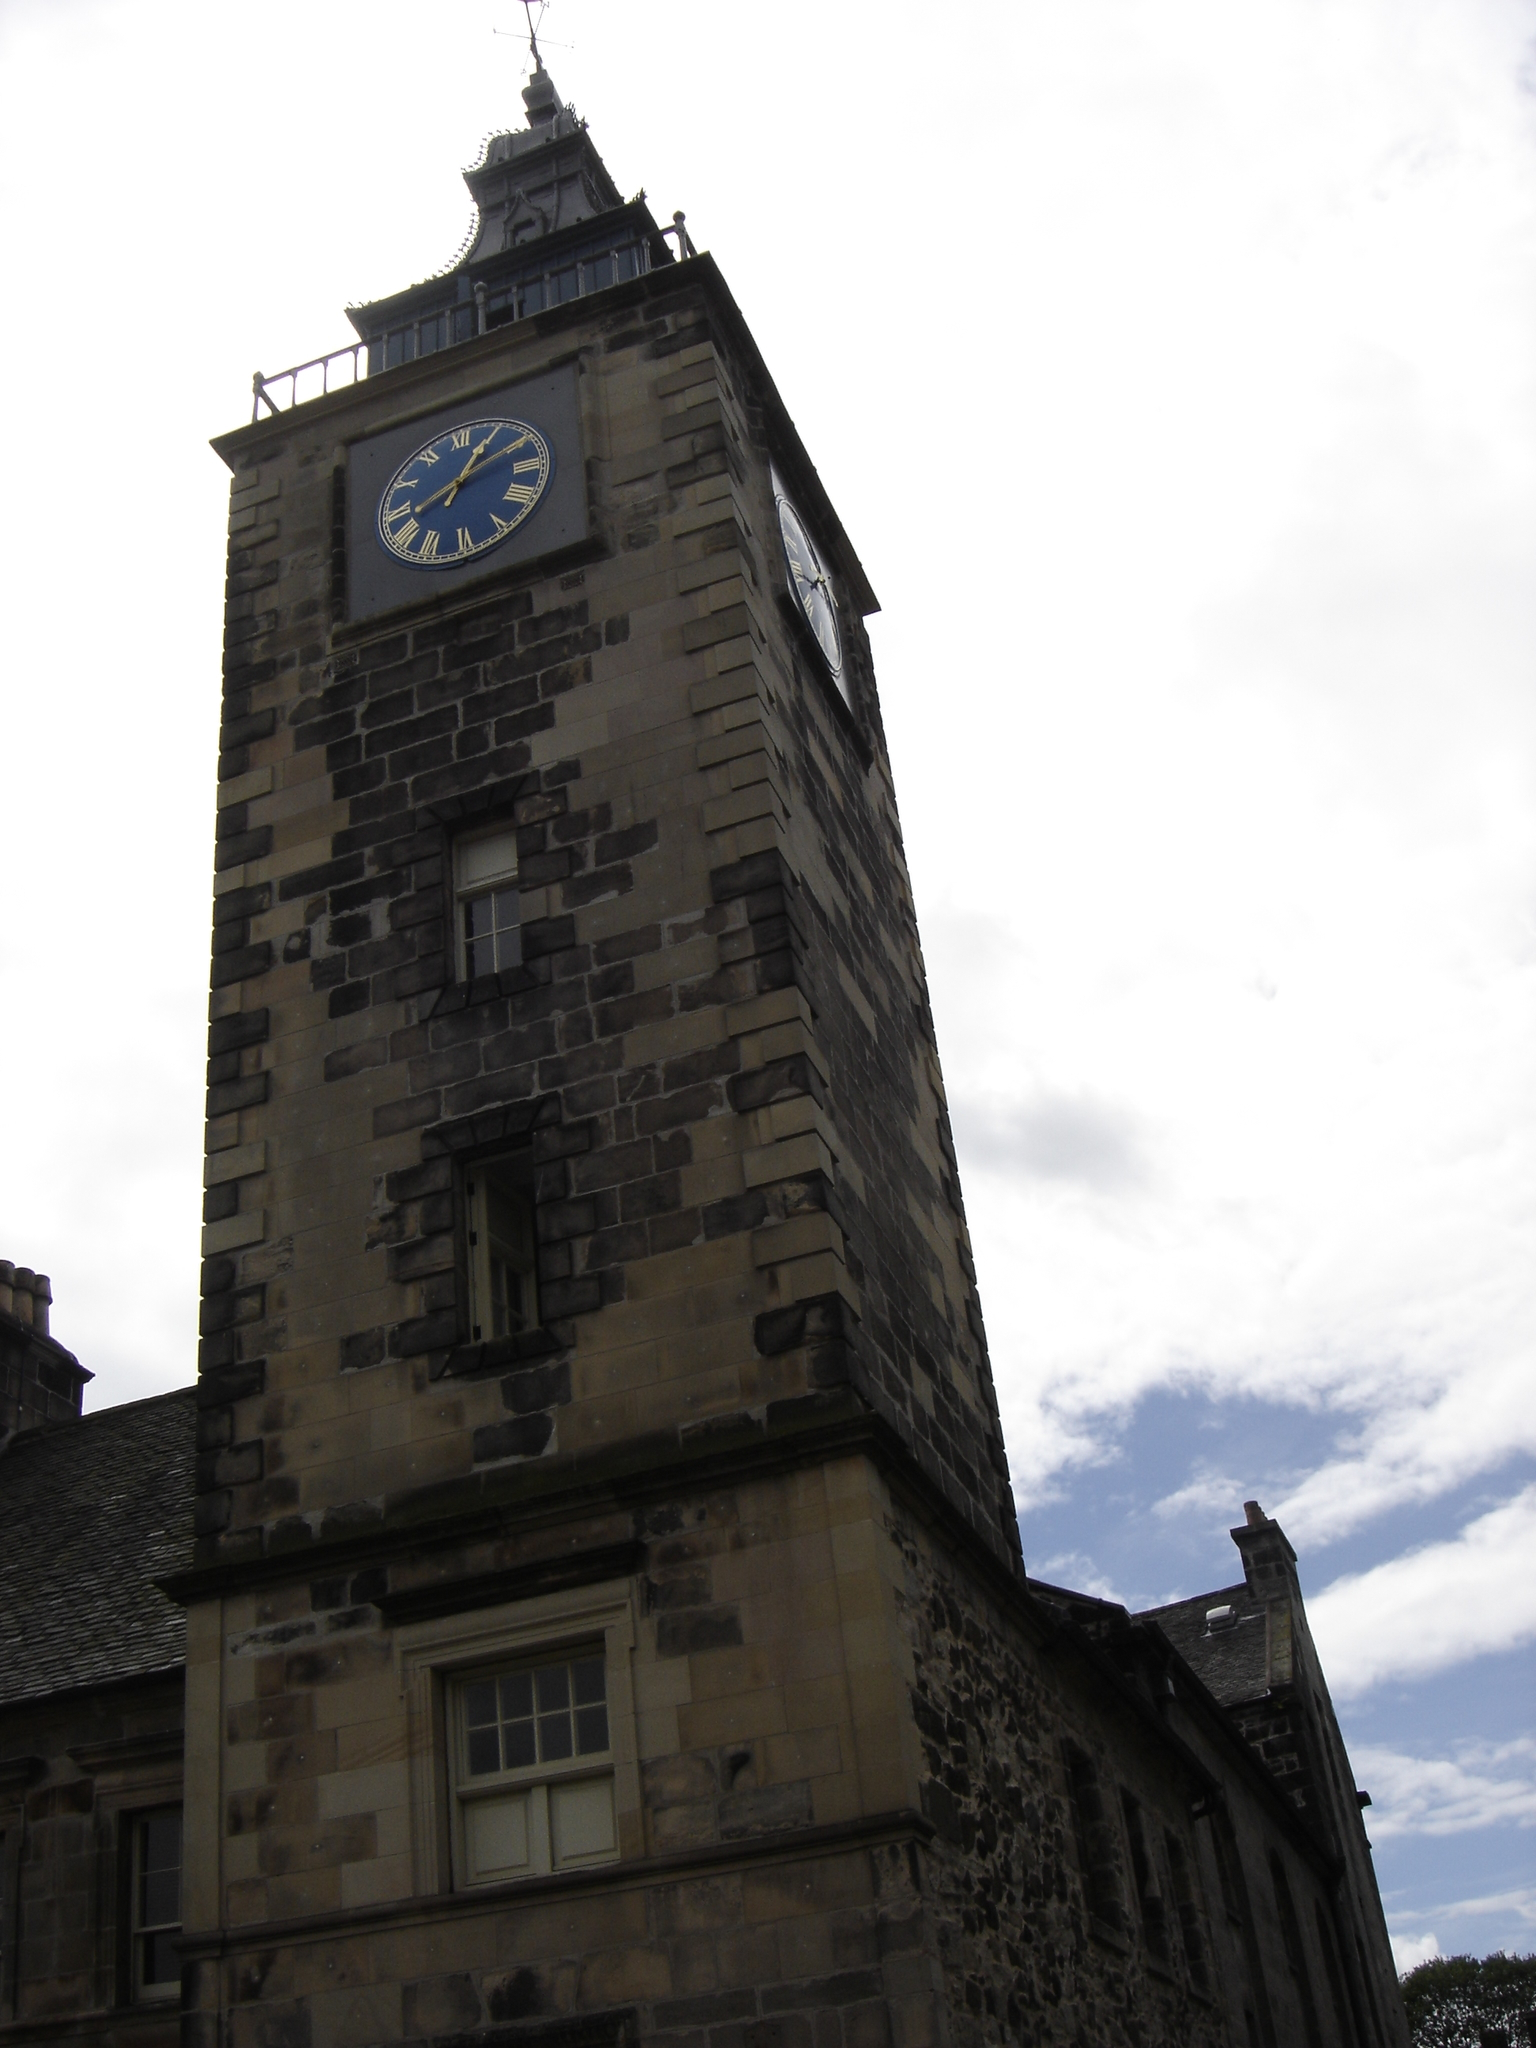 Frederik Questier - Photo: 20060717-130947 Scotland Stirling old Tolbooth clock